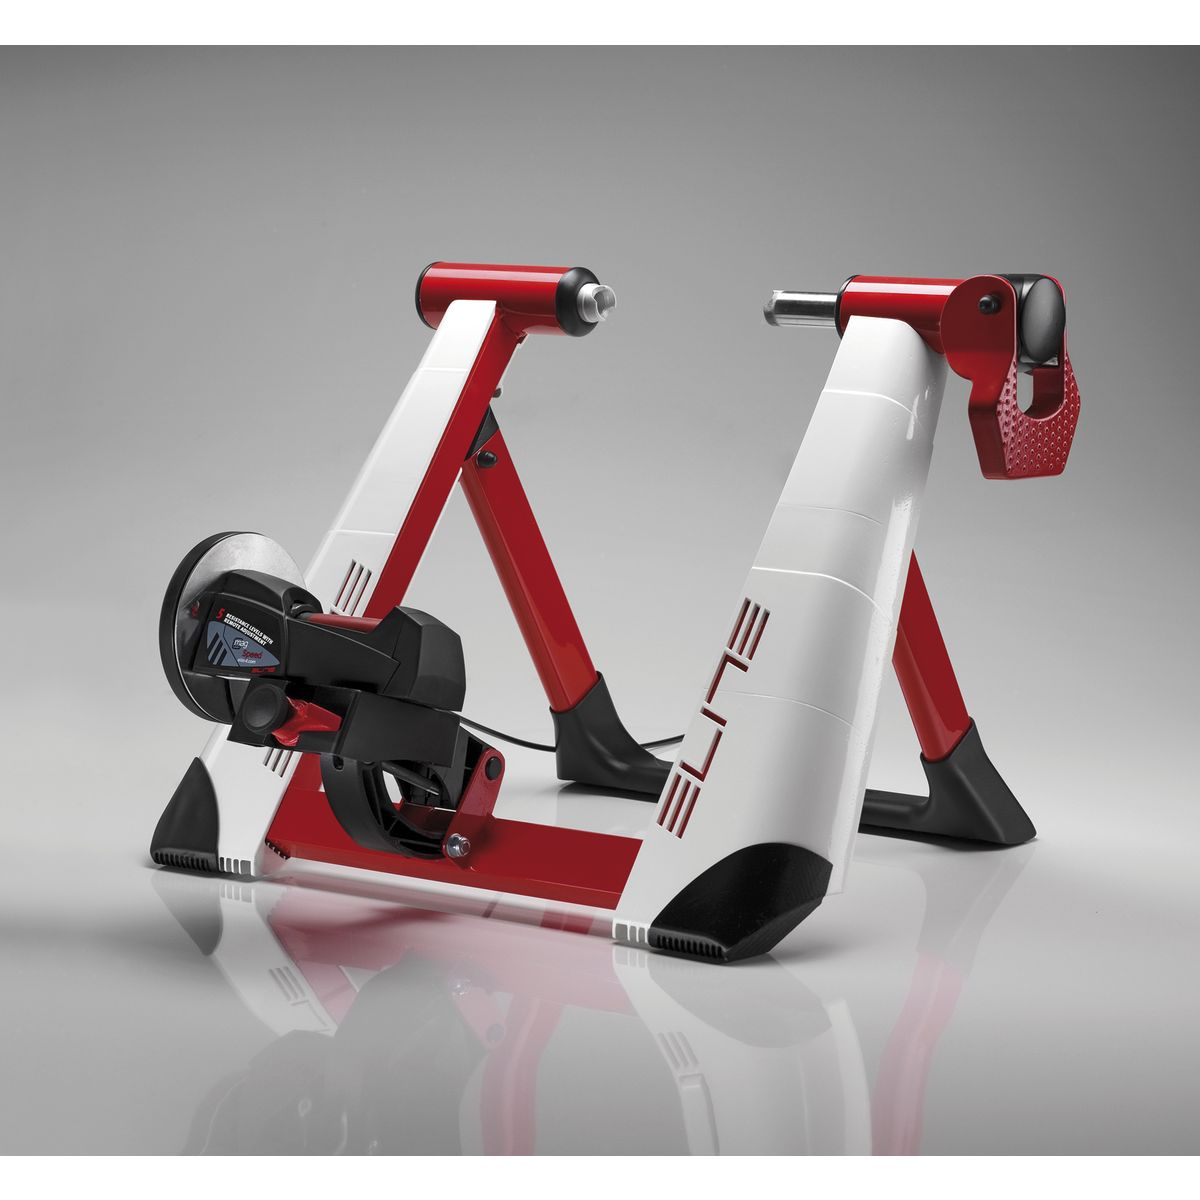 Novo Mag Force Elastogel turbo trainer